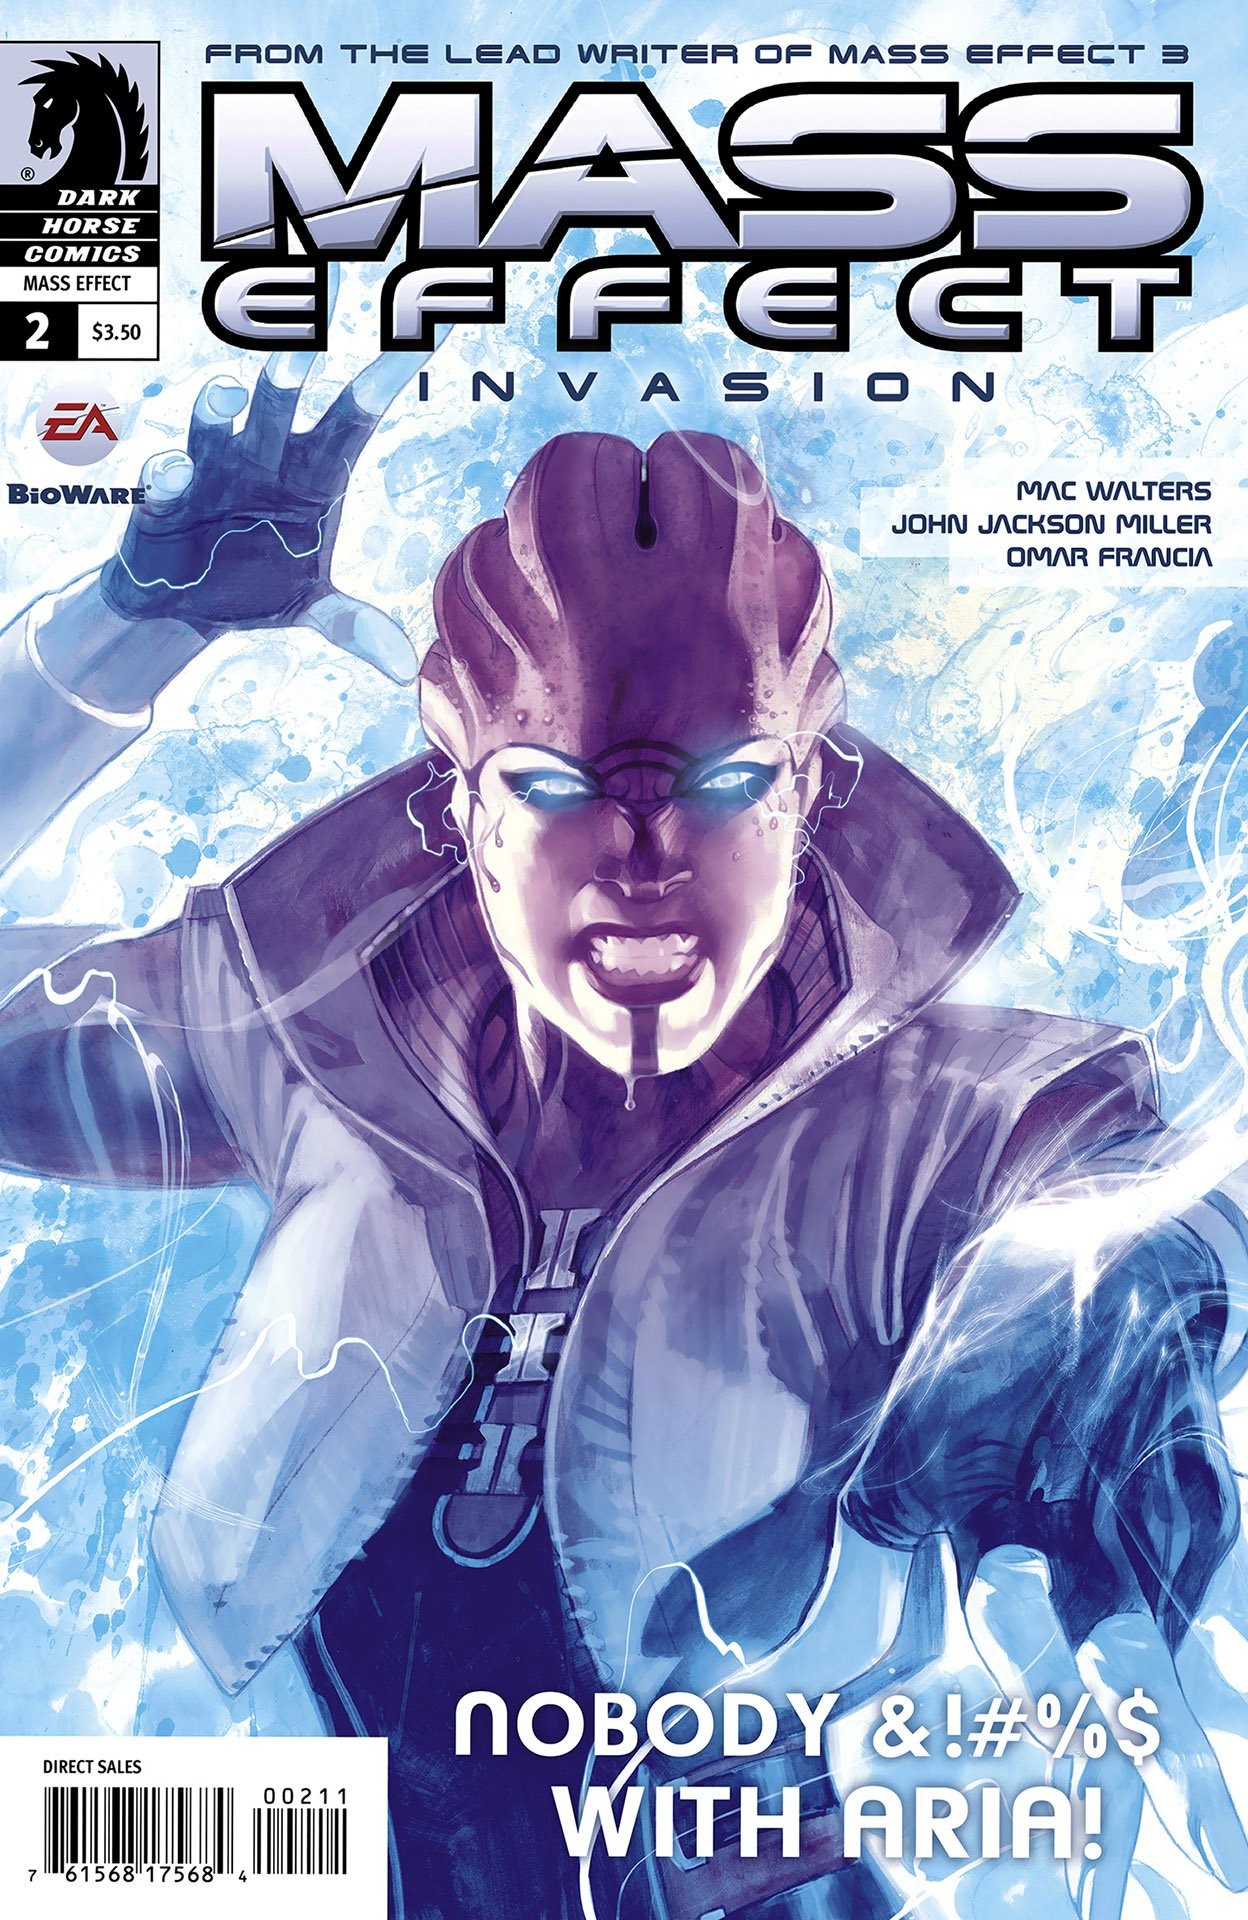 Mass Effect - Invasion 002 (cover a) (November 2011)